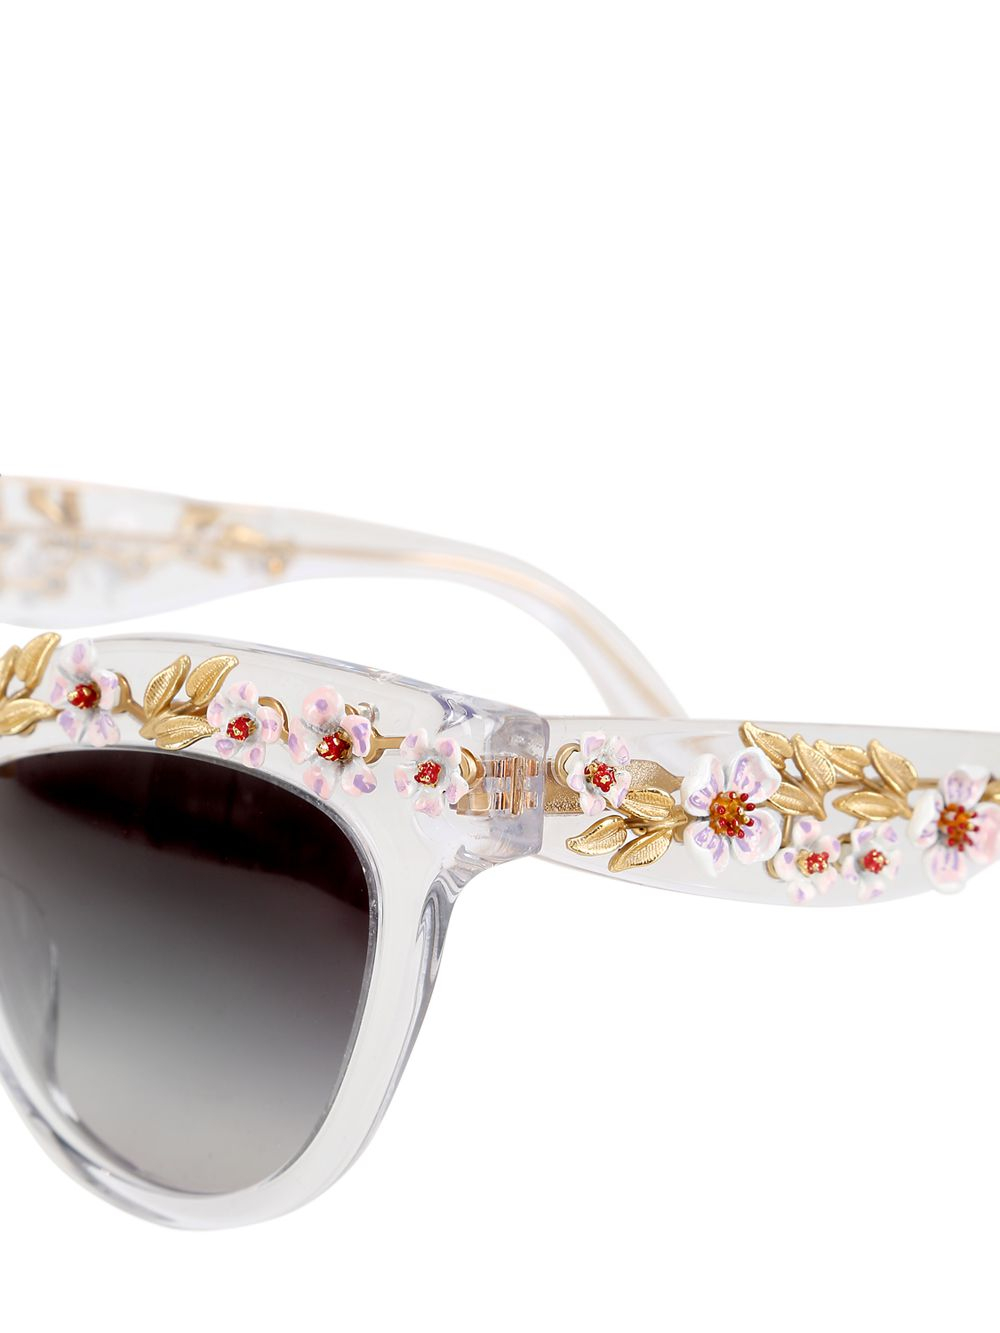 Dolce Gabbana Flower Sunglasses  dolce gabbana flowers embellished cat eye sunglasses lyst